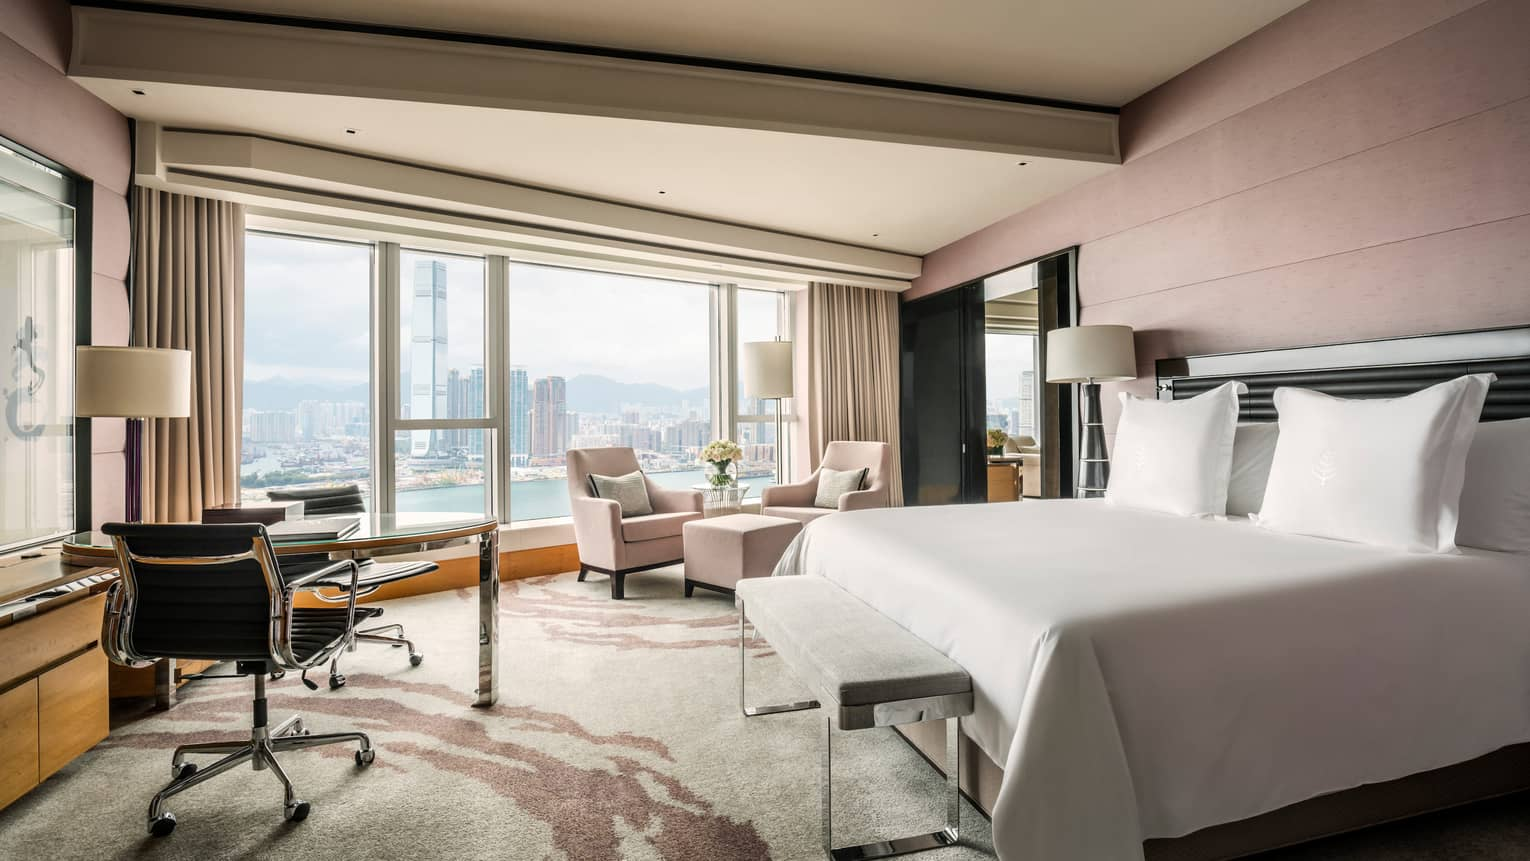 Hong Kong hotel room bed, desk, two armchairs and ottoman in front of floor-to-ceiling window, waterfront view